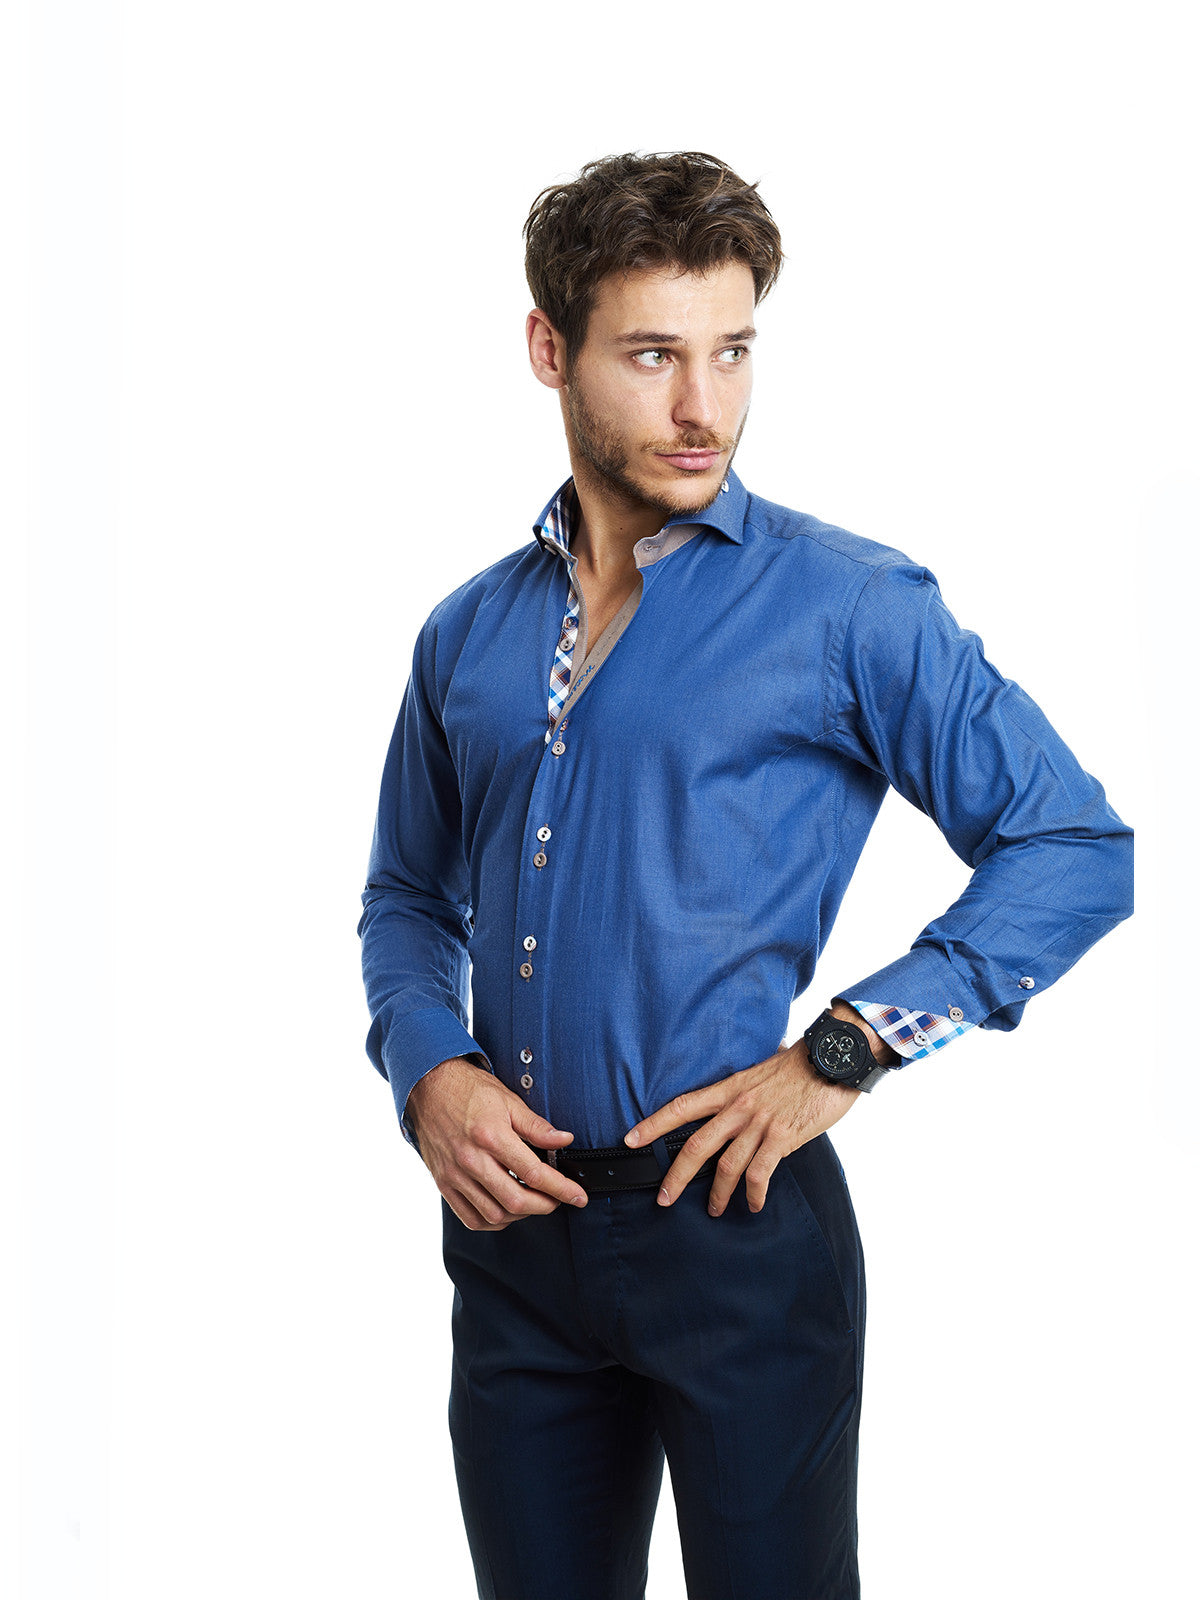 Maceoo Mini Panam Blue Shirt - Slim  - 4